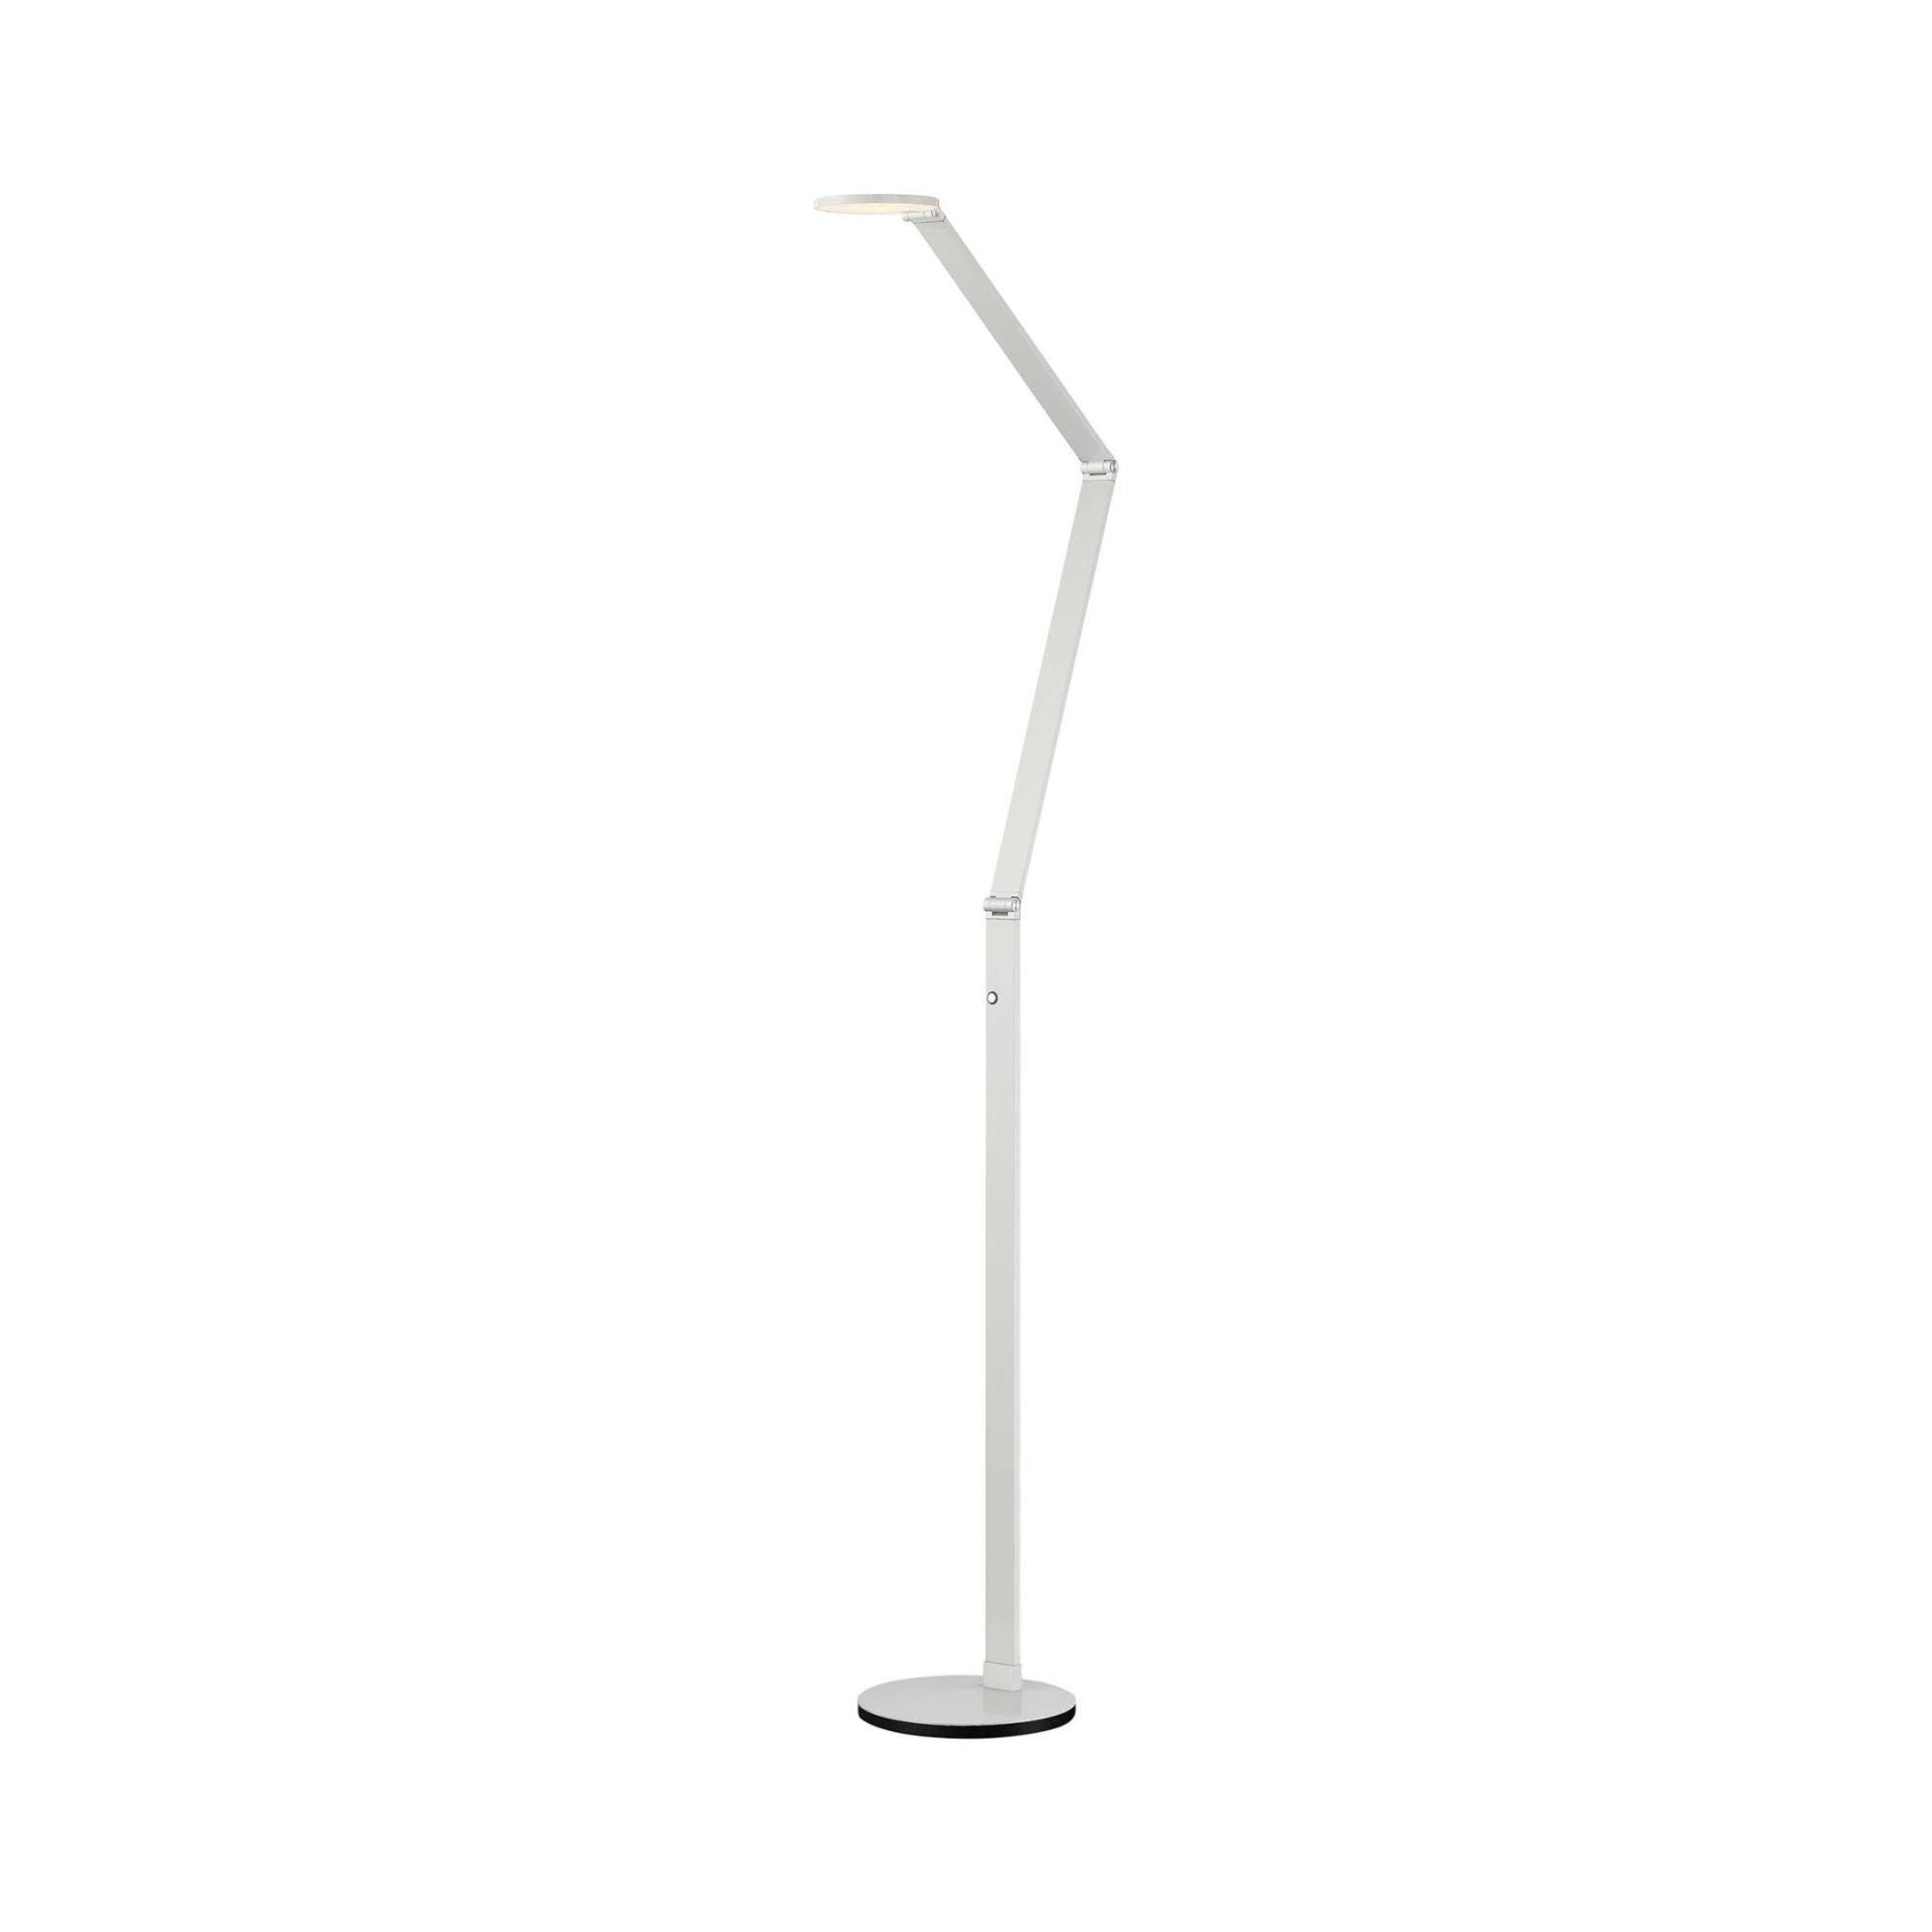 Kovacs Floor Lamp - P305-2-044-l - Modern Contemporary